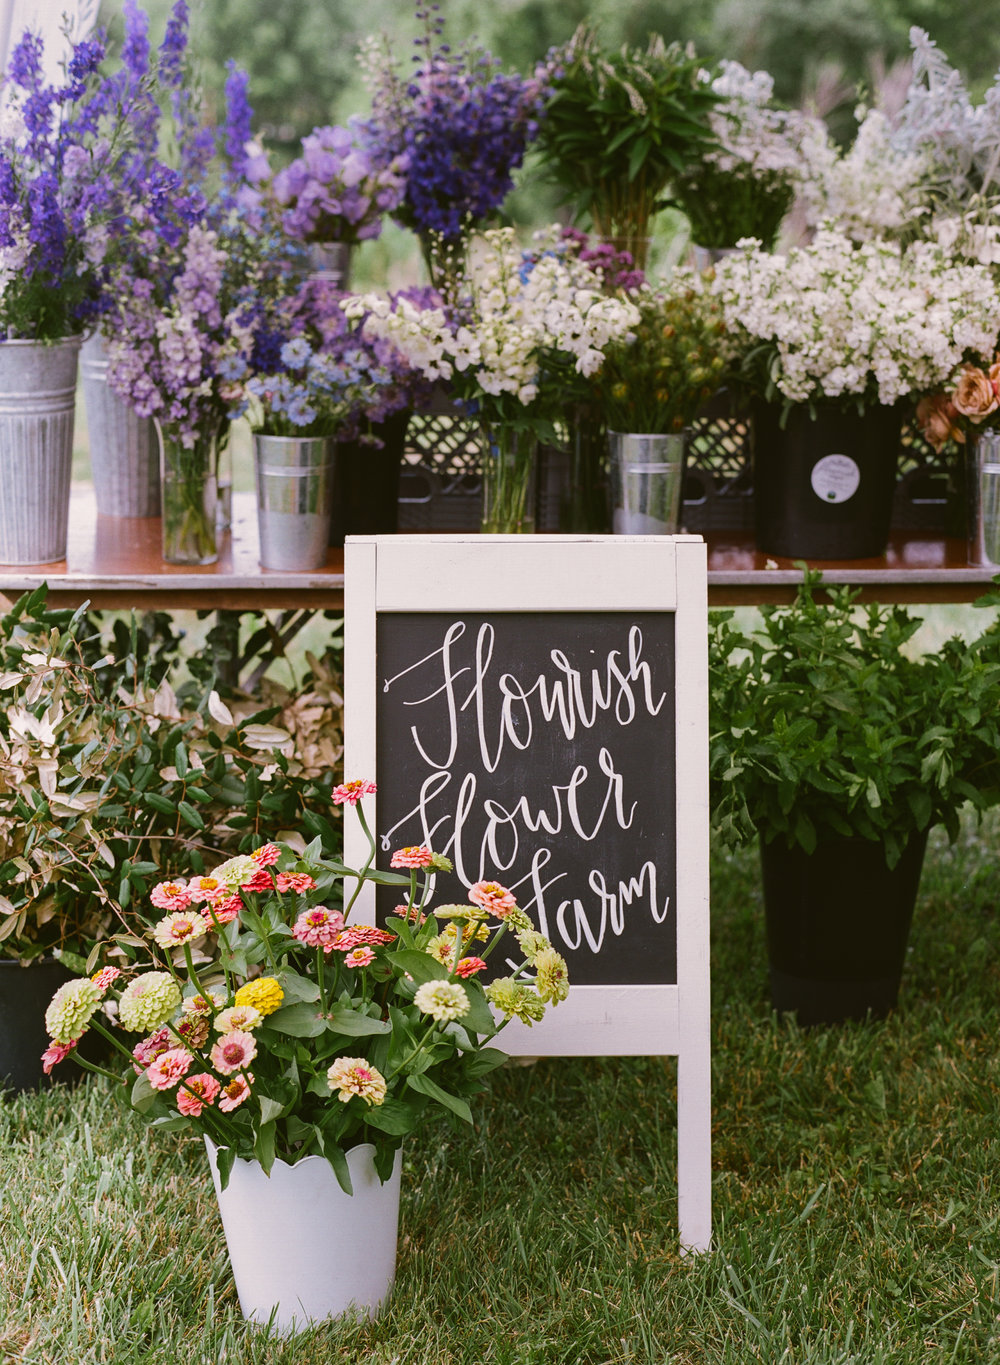 Shop Flourish Flower Farm